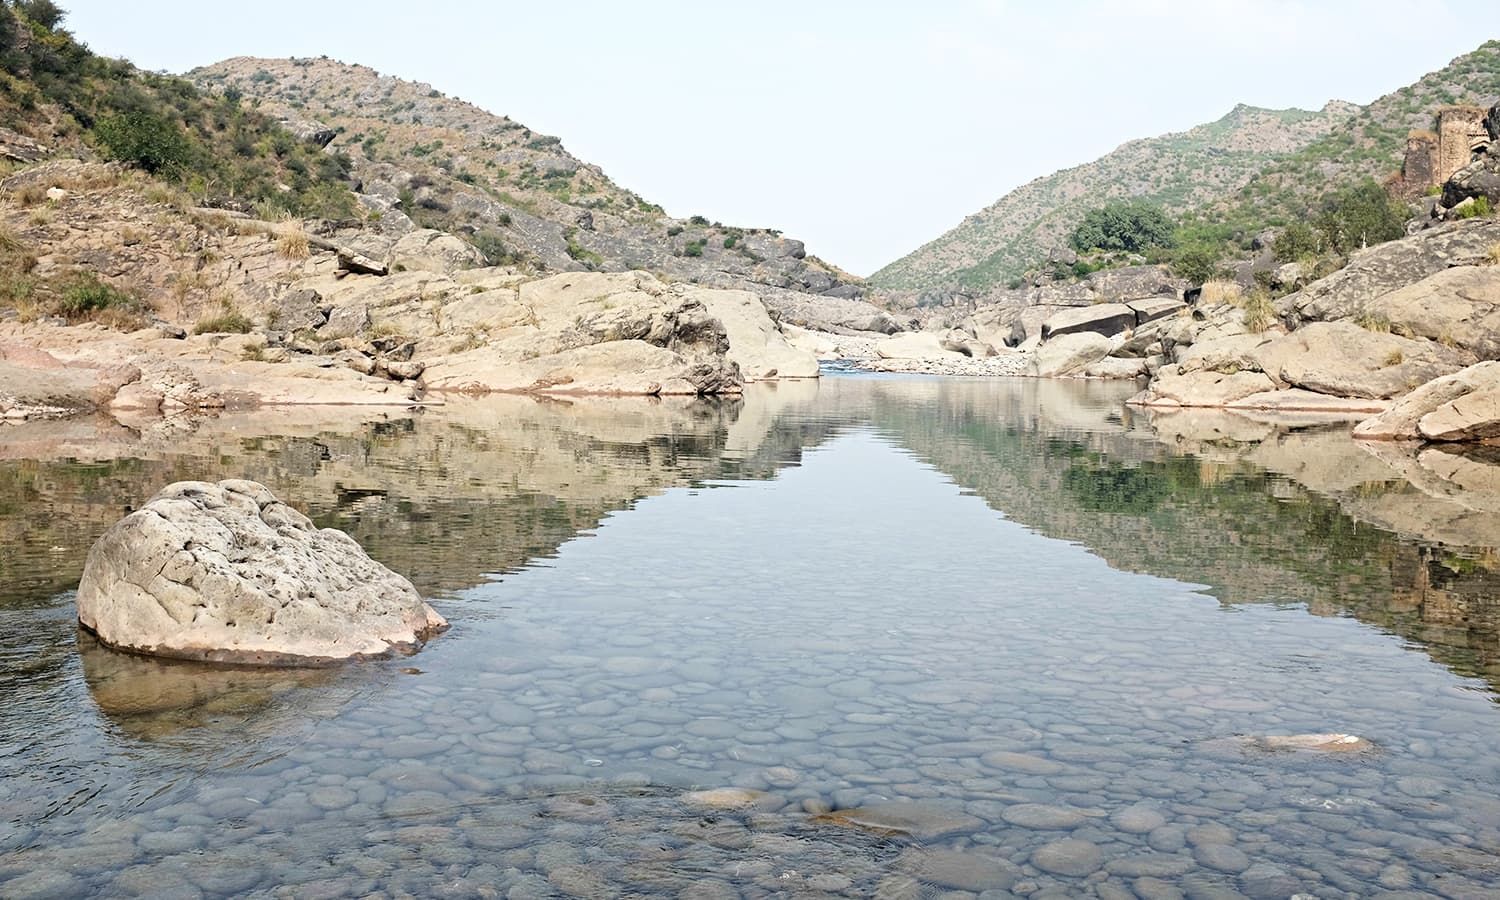 A stream below in the ravine.